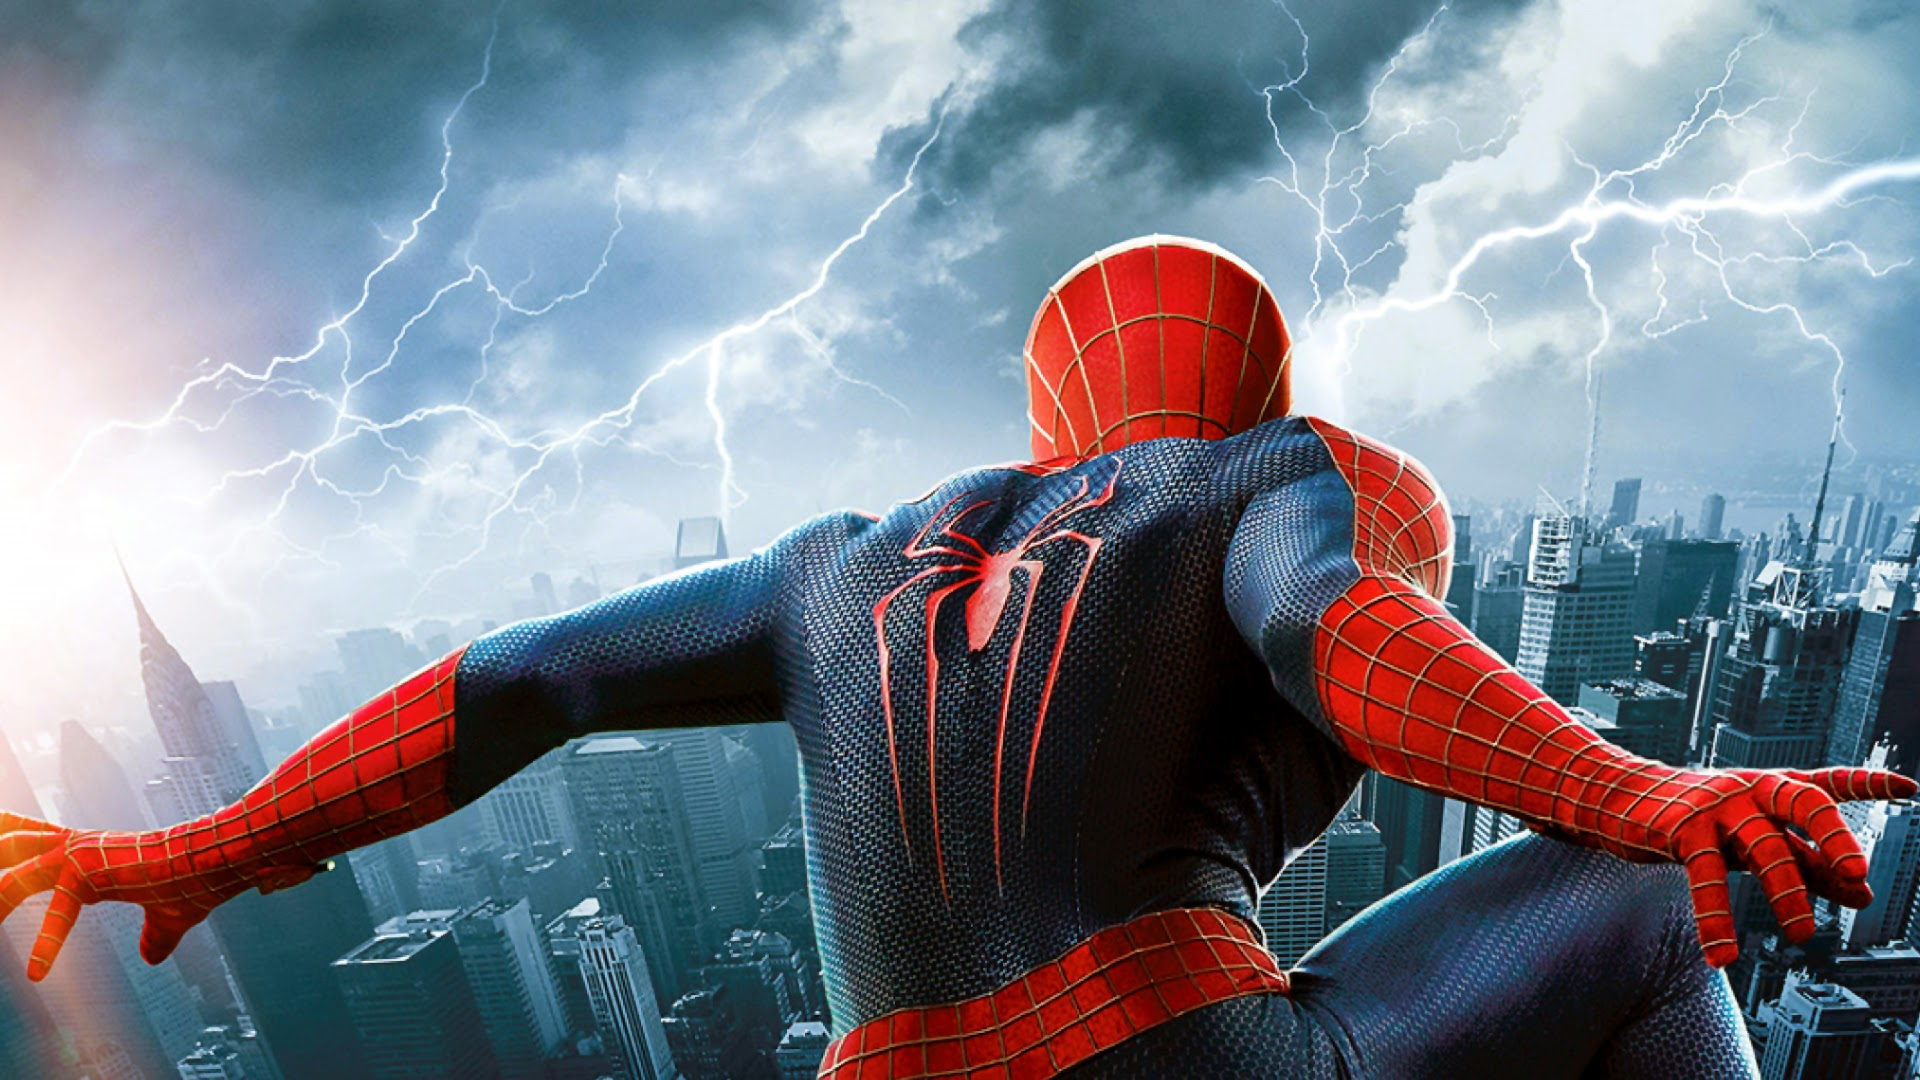 The Amazing Spider-Man 2 2014 Movie 3g Wallpaper HD